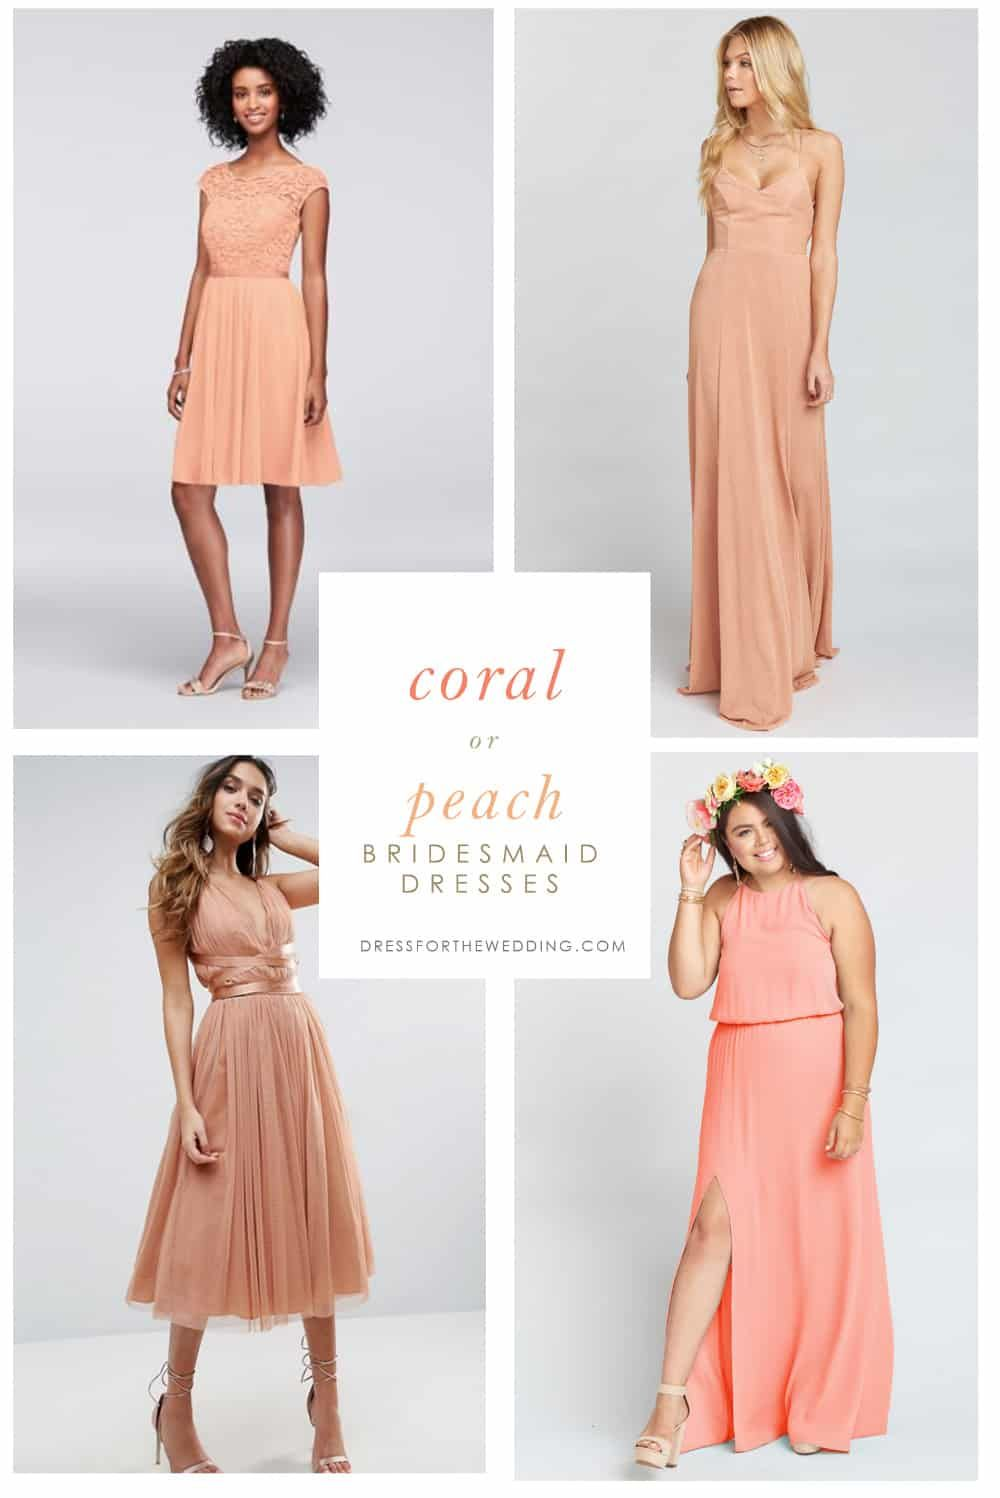 Coral Bridesmaid Dresses Dress For The Wedding Coral Bridesmaid Dresses Peach Bridesmaid Dresses Bridesmaid Dresses